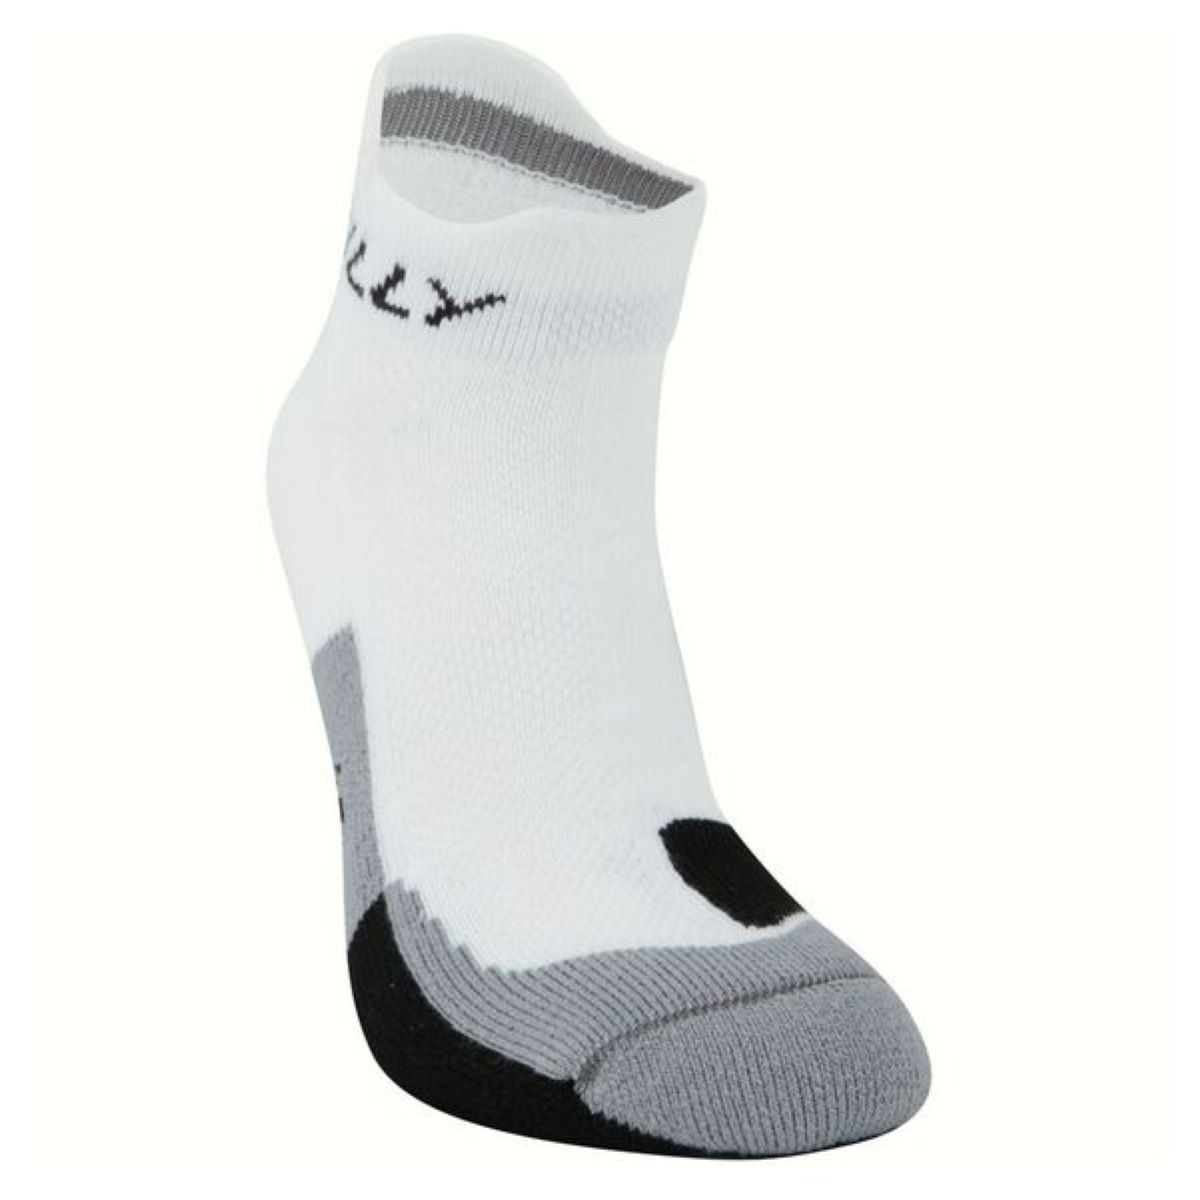 Socquettes Hilly Cushion - XL White/Black/Grey